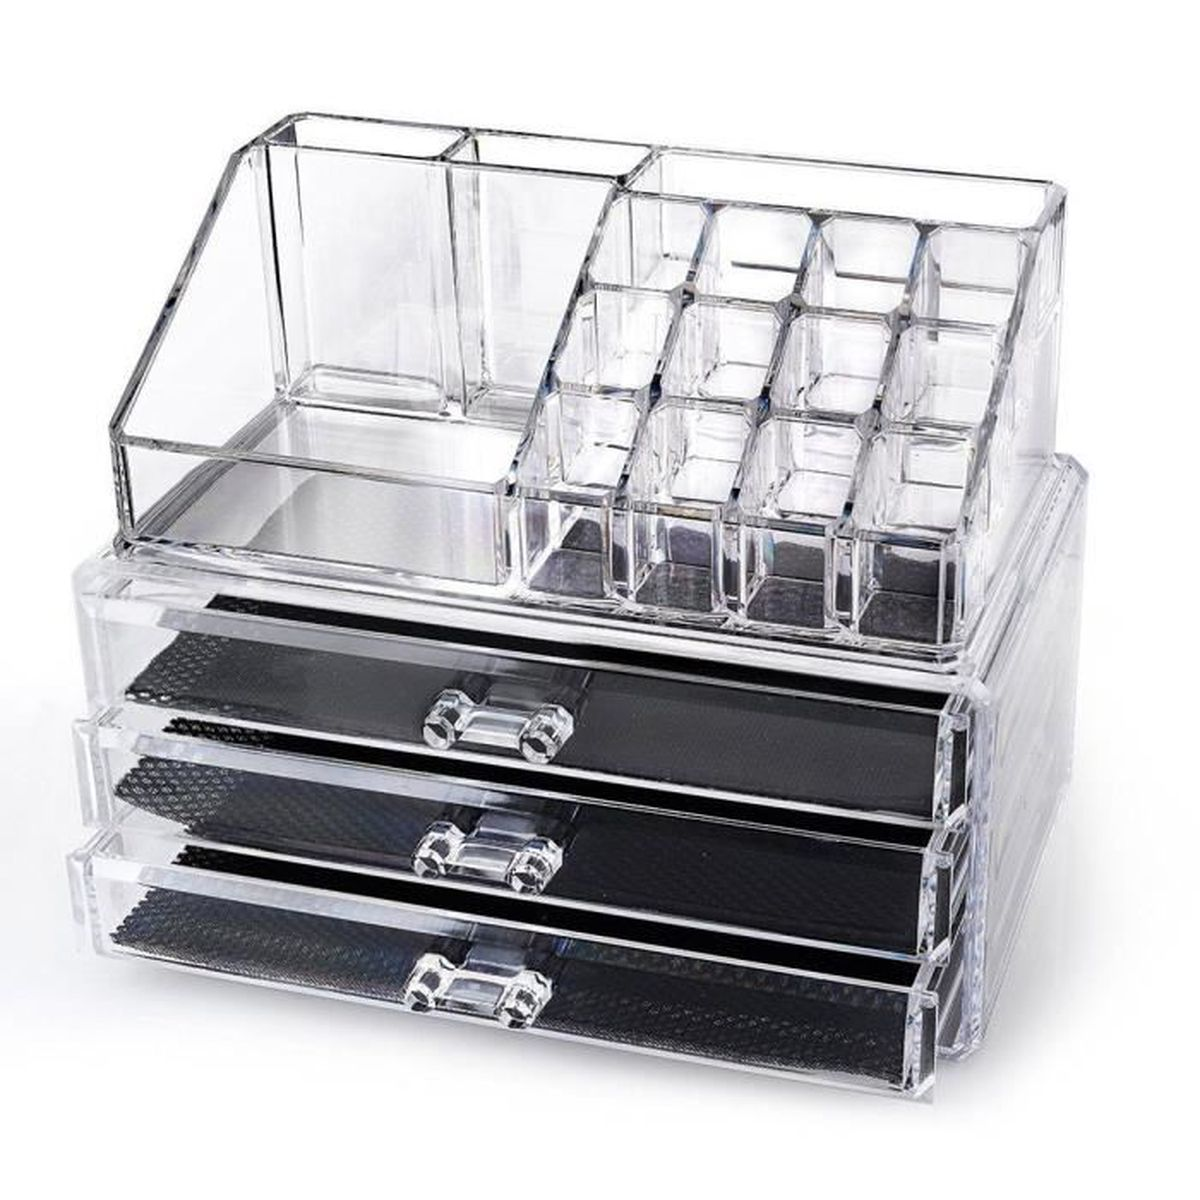 maquillage acrylique transparent tiroir organisateur cosm tiques bo te de porte plaquette de. Black Bedroom Furniture Sets. Home Design Ideas